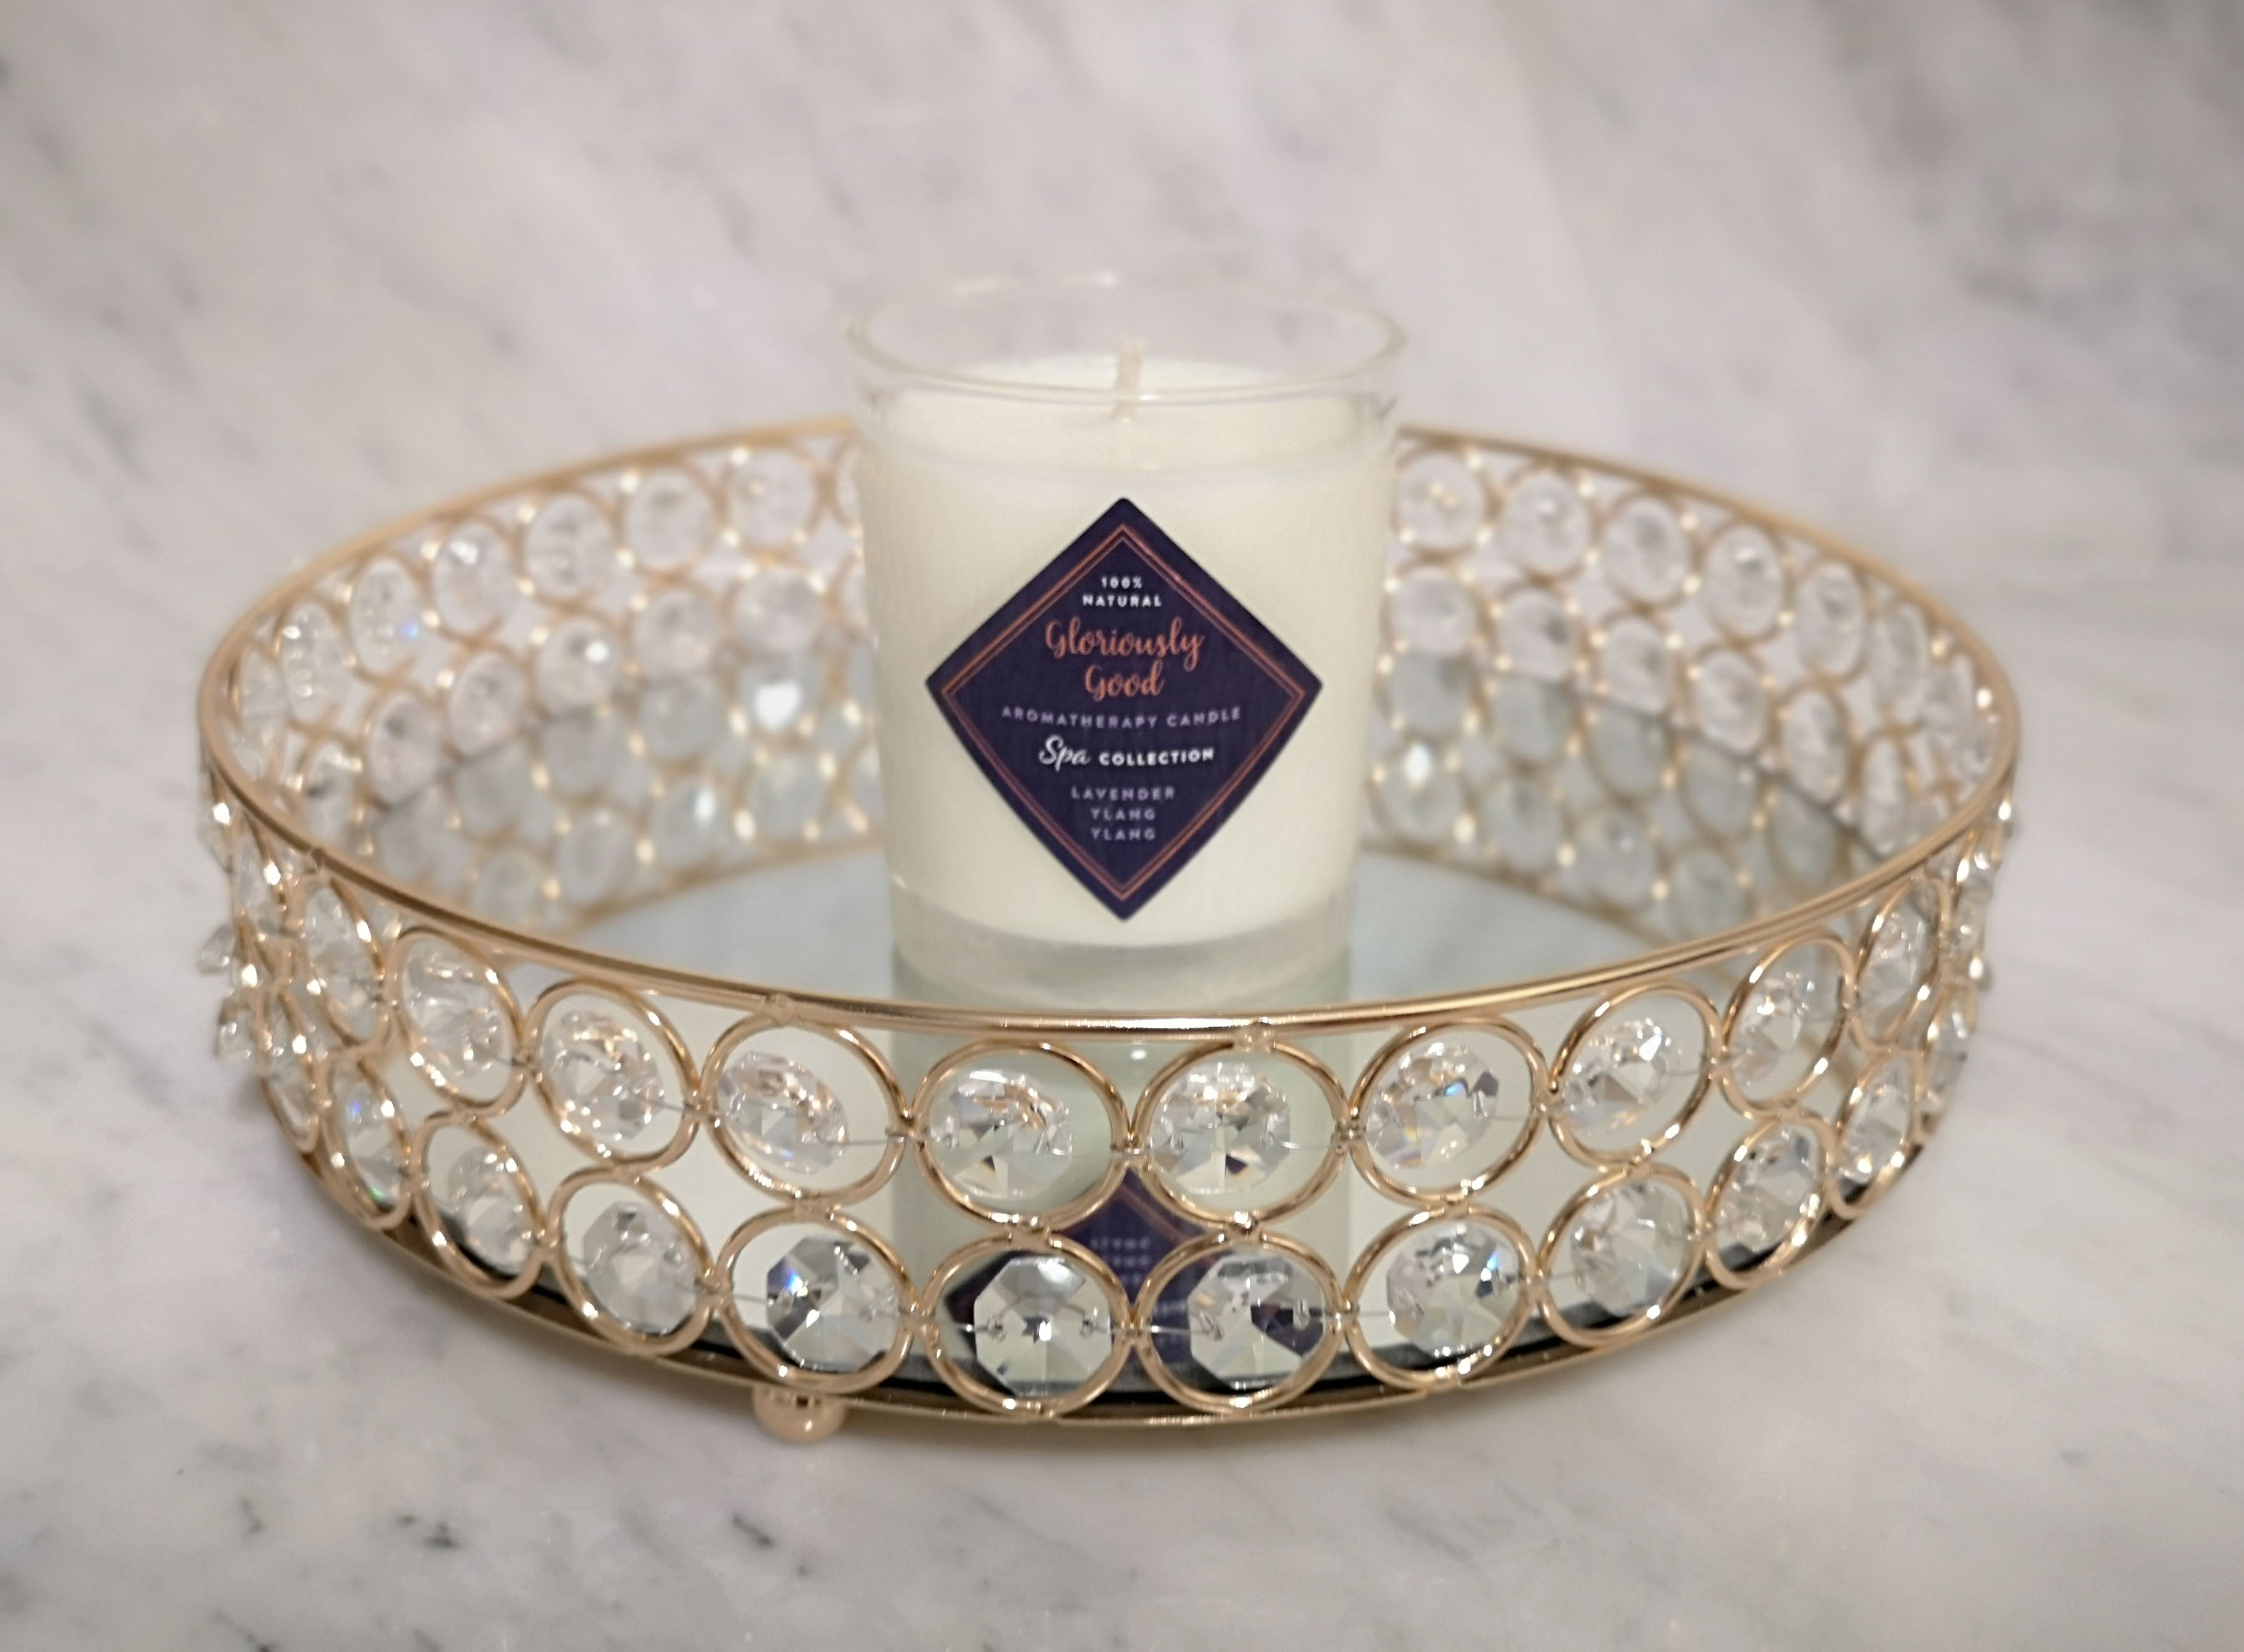 Mirrored decorative tray with Gloriously Good Lavender & Ylang Ylang  Aromatherapy Candle displayed in the centre